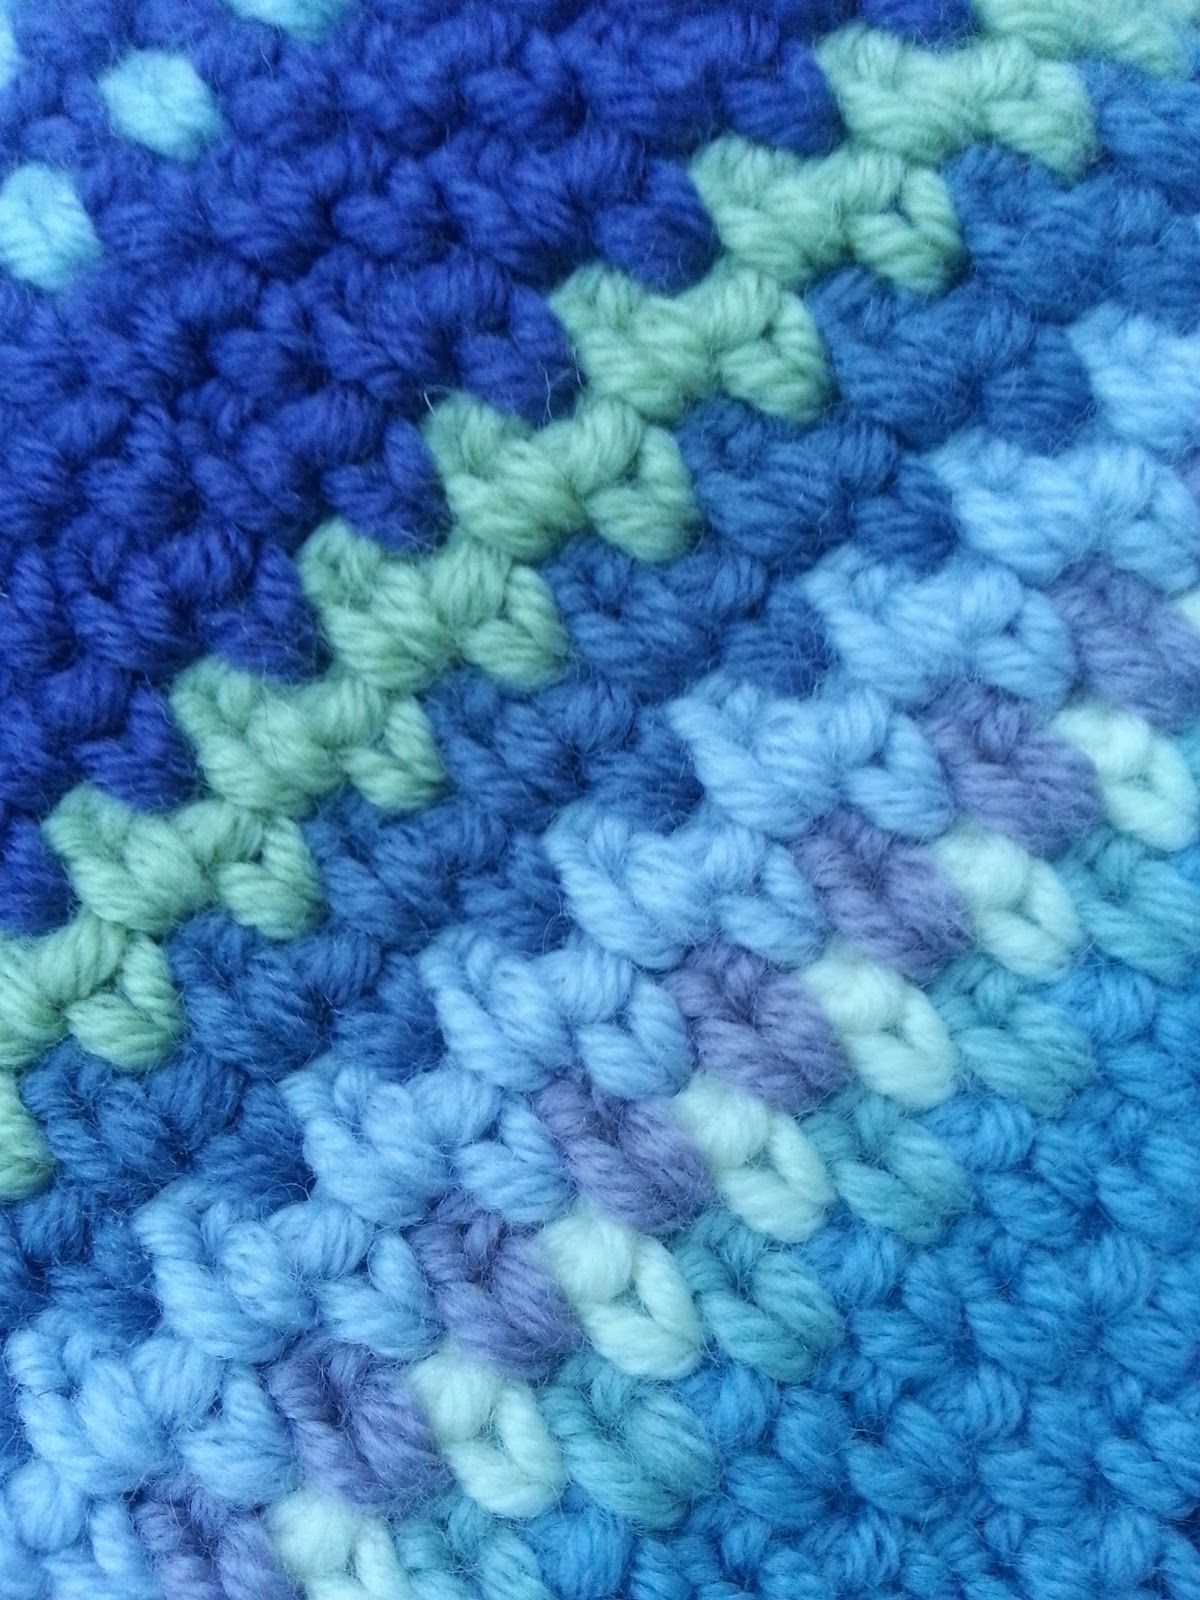 Find This Pin And More On Crochet  Stitches